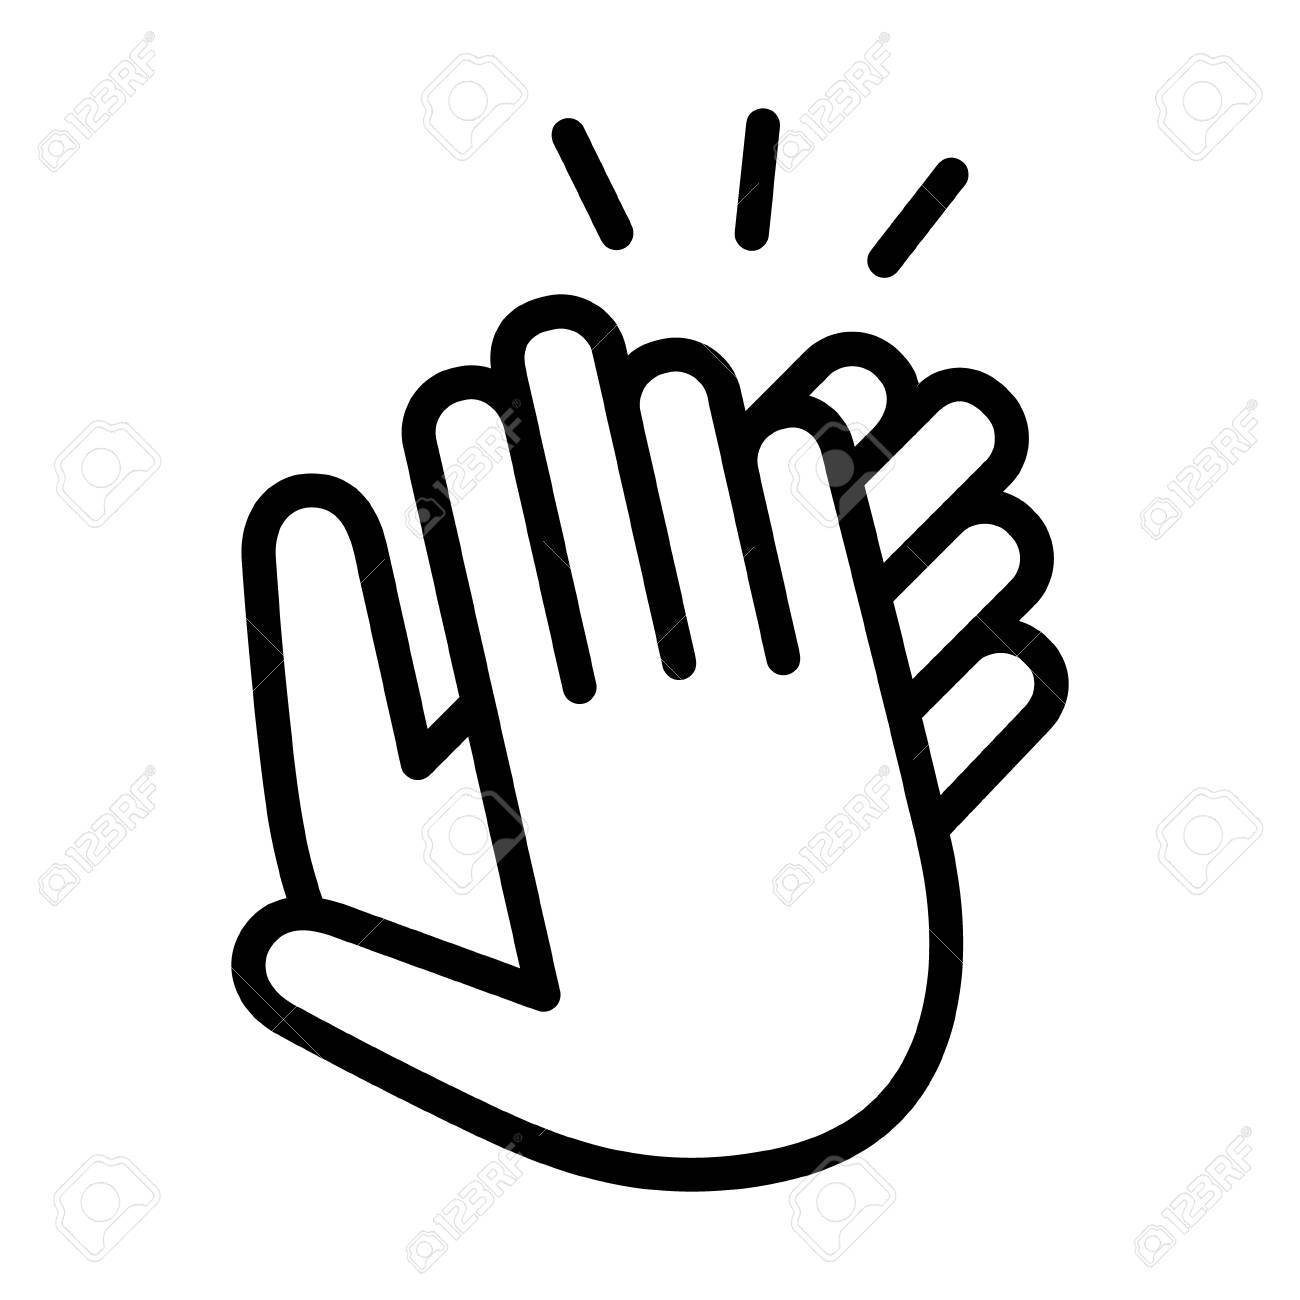 Clapping hands clipart black and white 1 » Clipart Portal.